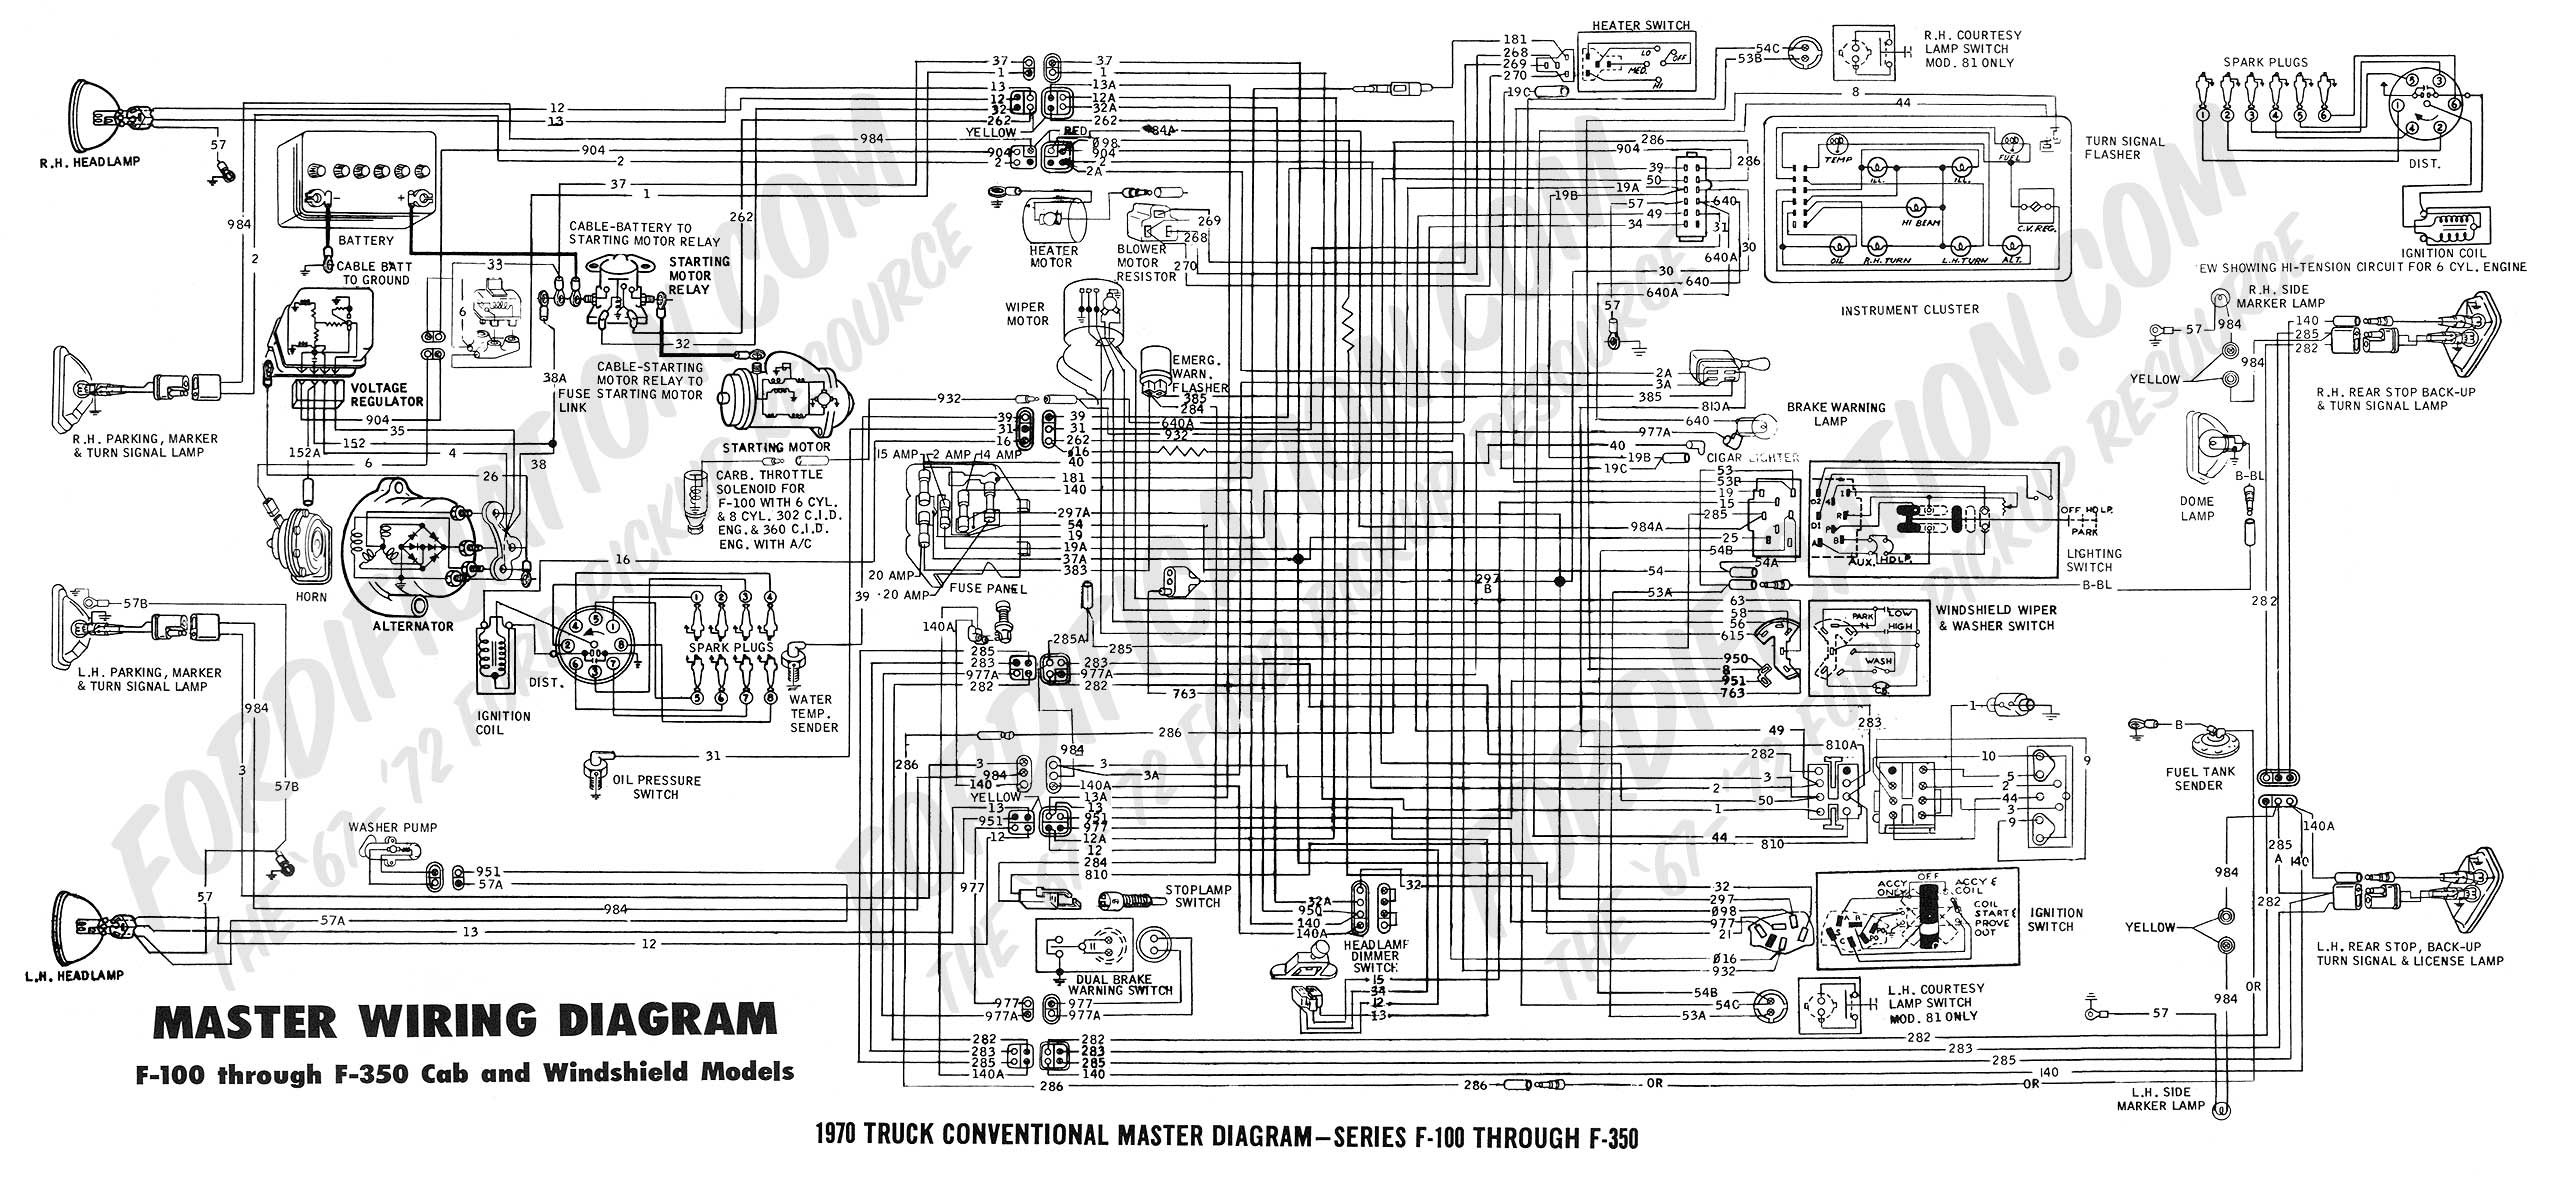 Used 2002 F250 Wiring Harness General Diagram Information Ipf For 1988 F 250 Trusted Diagrams U2022 Rh Sivamuni Com